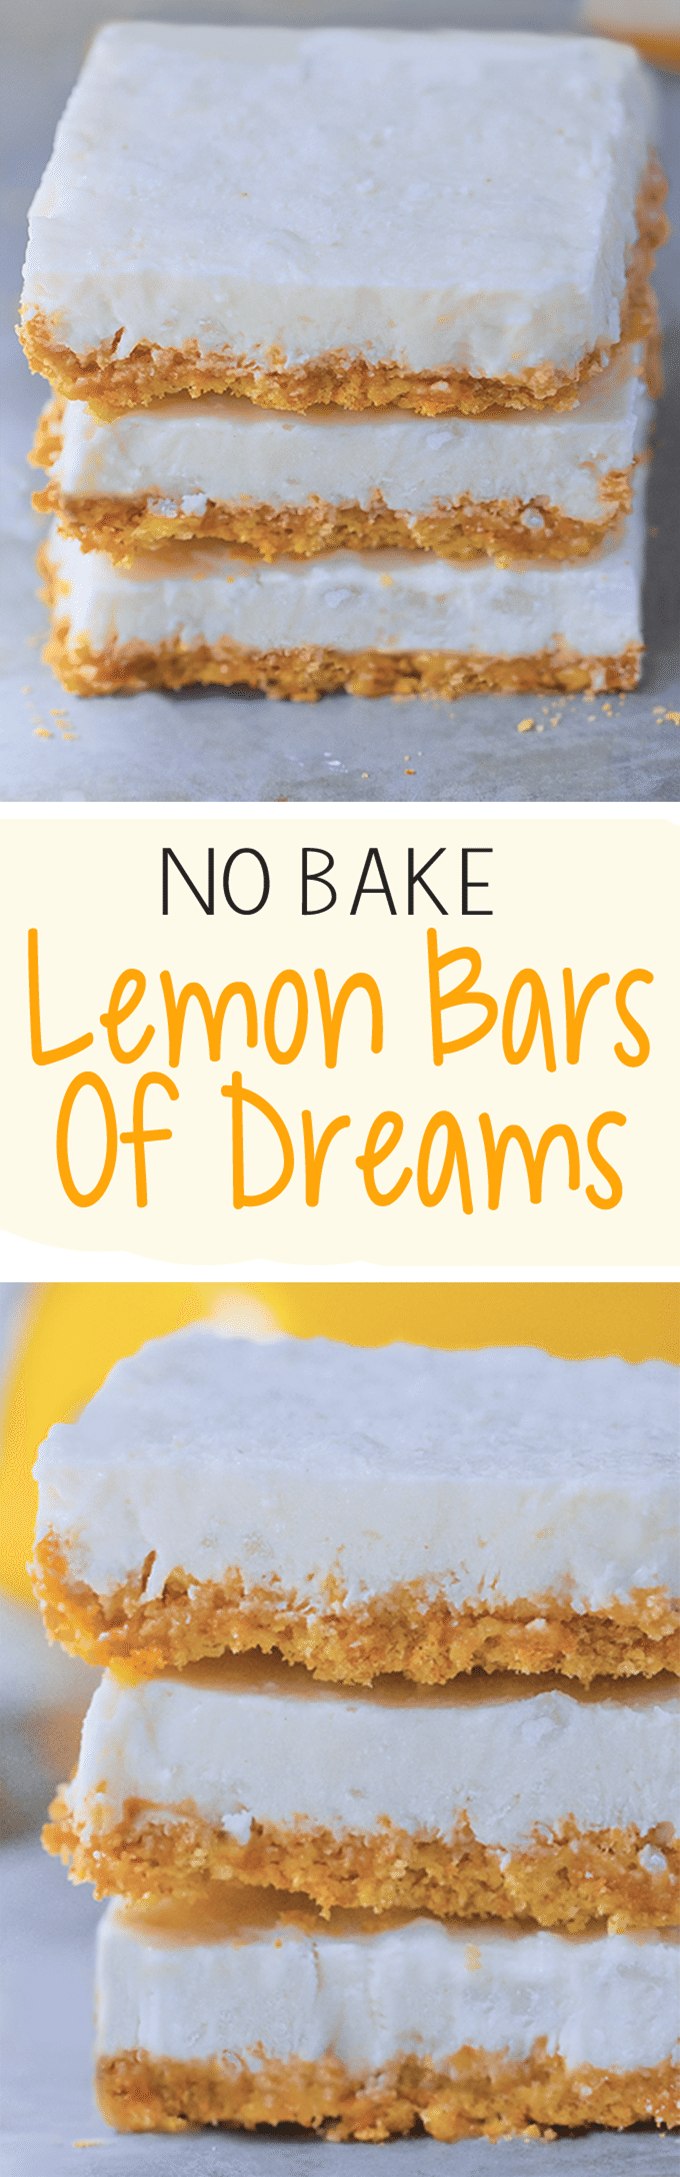 HEALTHY LEMON BARS - Ingredients: 1 tbsp lemon juice, 2 tbsp pure maple syrup, 1 tsp lemon zest, 1/2 cup… Full recipe>> @choccoveredkt https://chocolatecoveredkatie.com